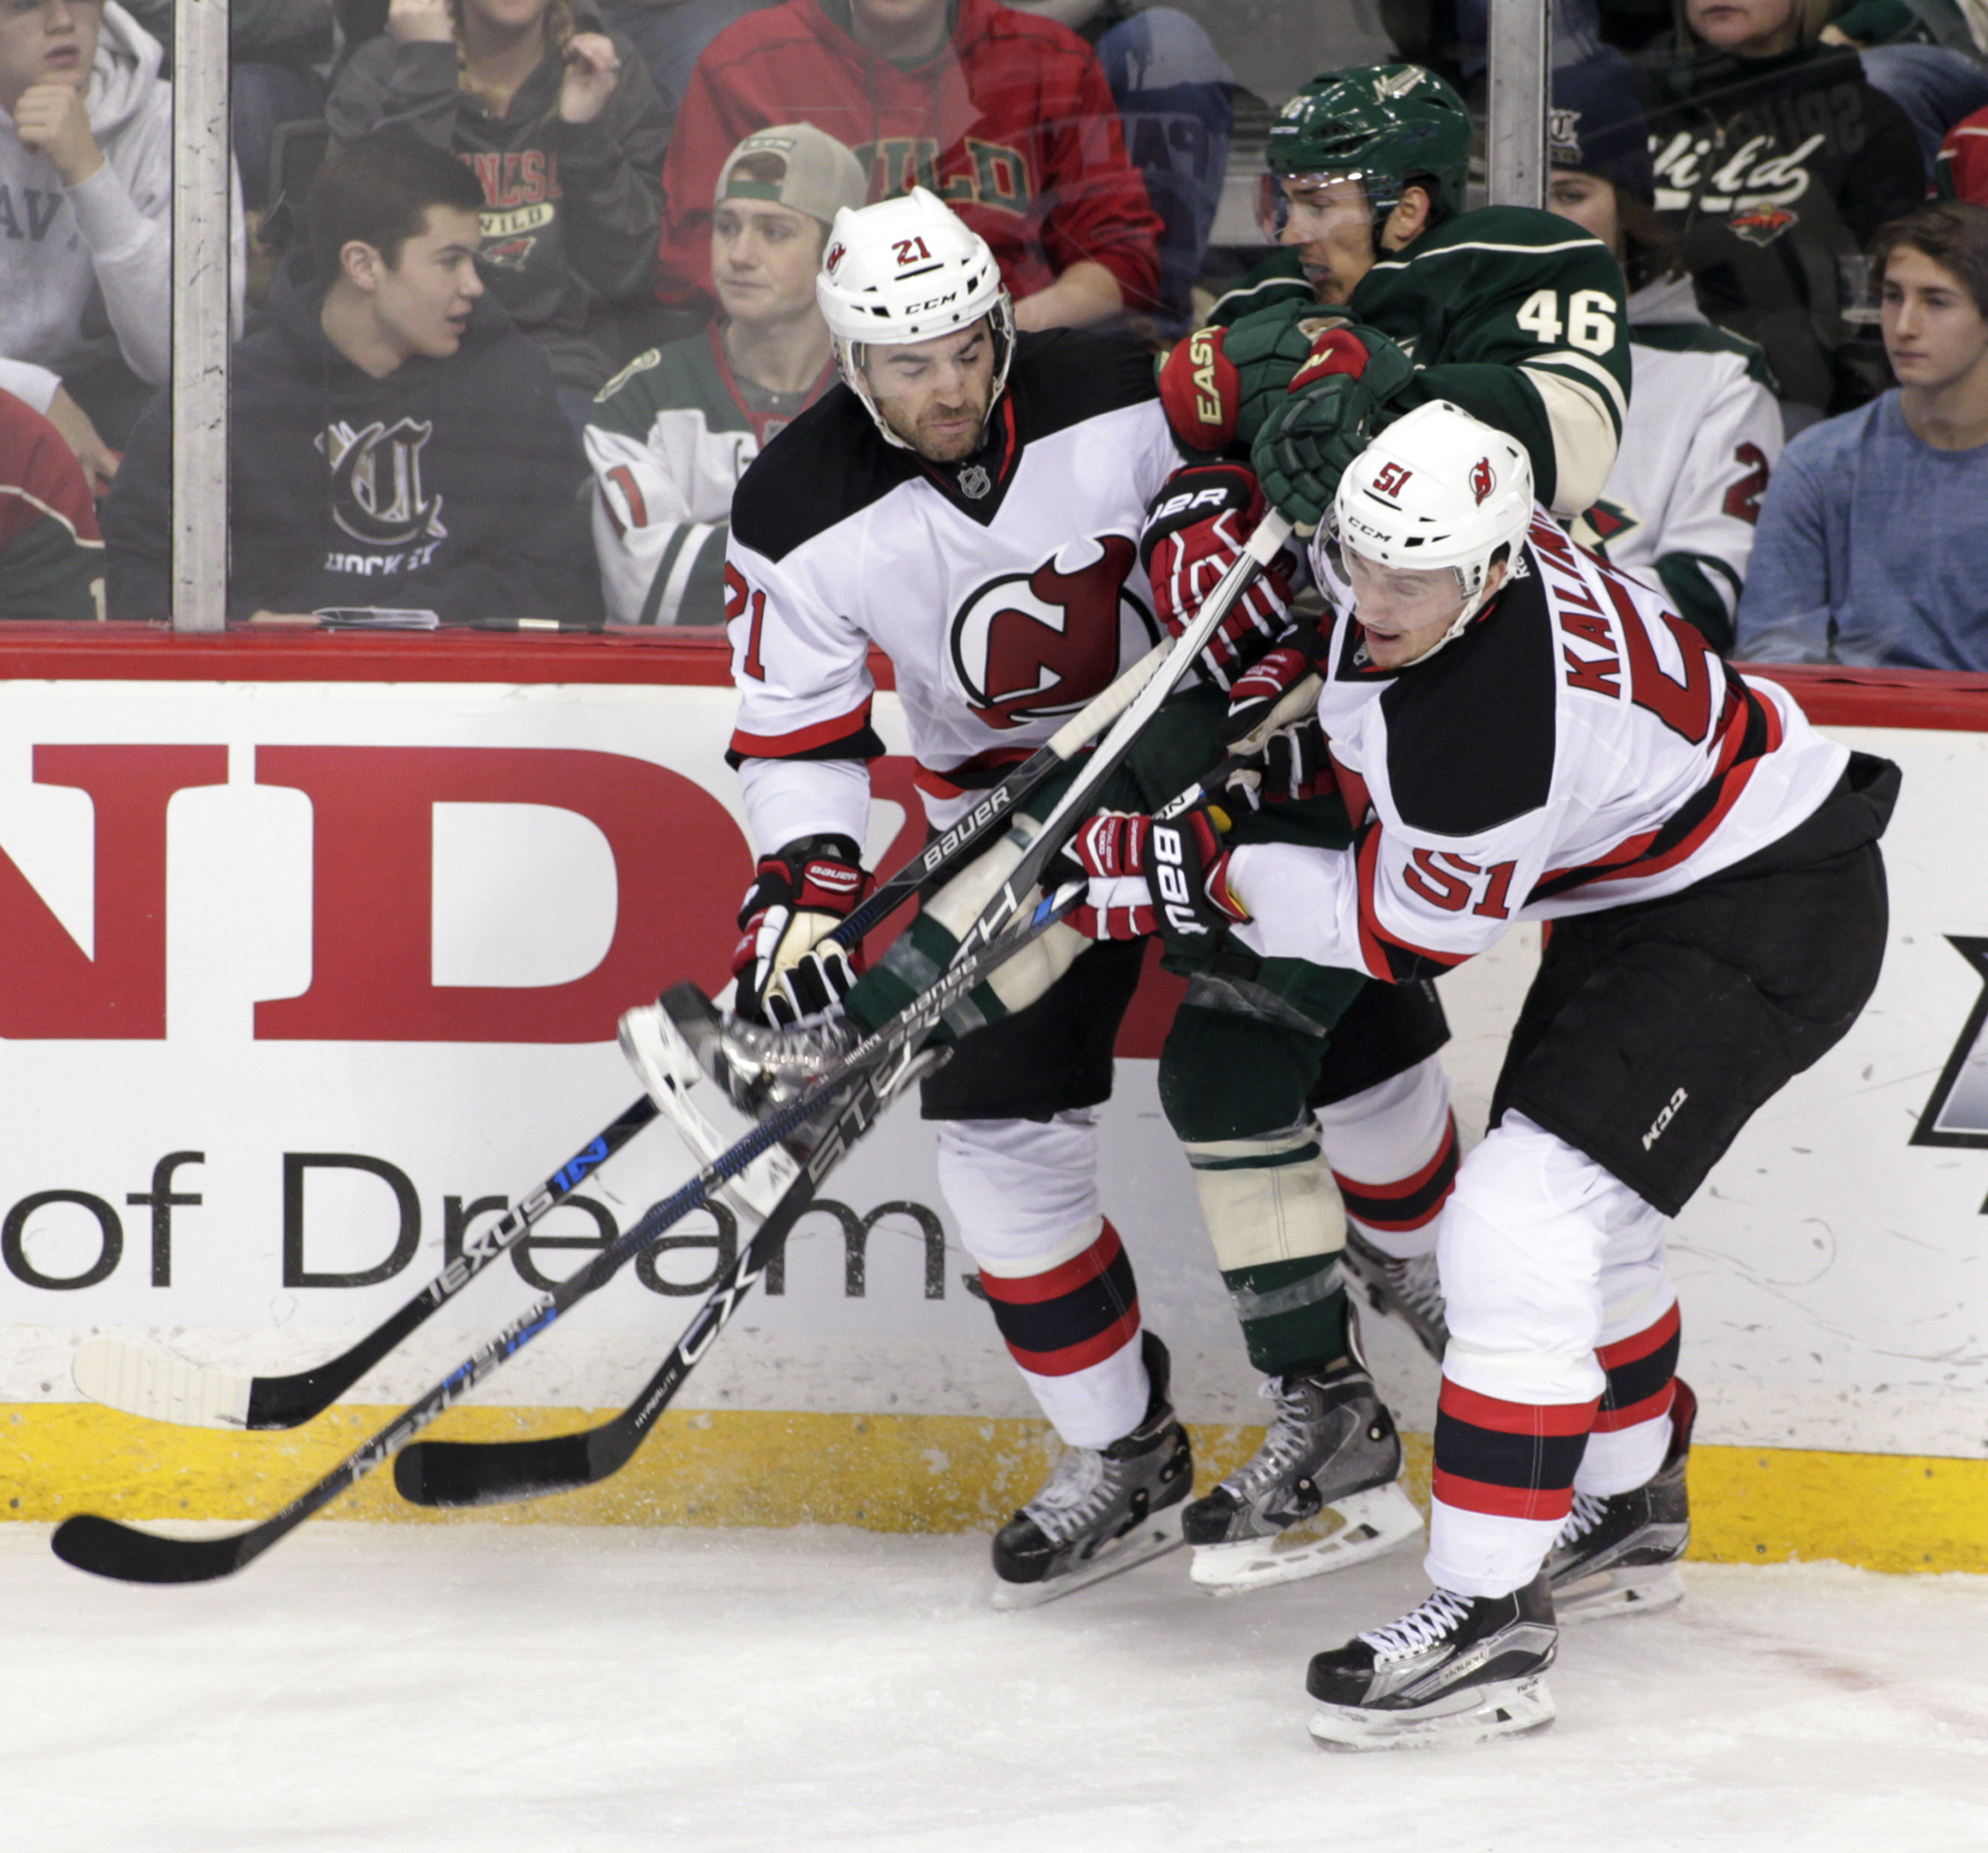 Minnesota Wild defenseman Jared Spurgeon (46) is sandwiched by New Jersey Devils' Kyle Palmieri (21) and Sergey Kalinin (51), of Russia, during the first period of an NHL hockey game Sunday, Jan. 10, 2016, in St. Paul, Minn. (AP Photo/Paul Battaglia)